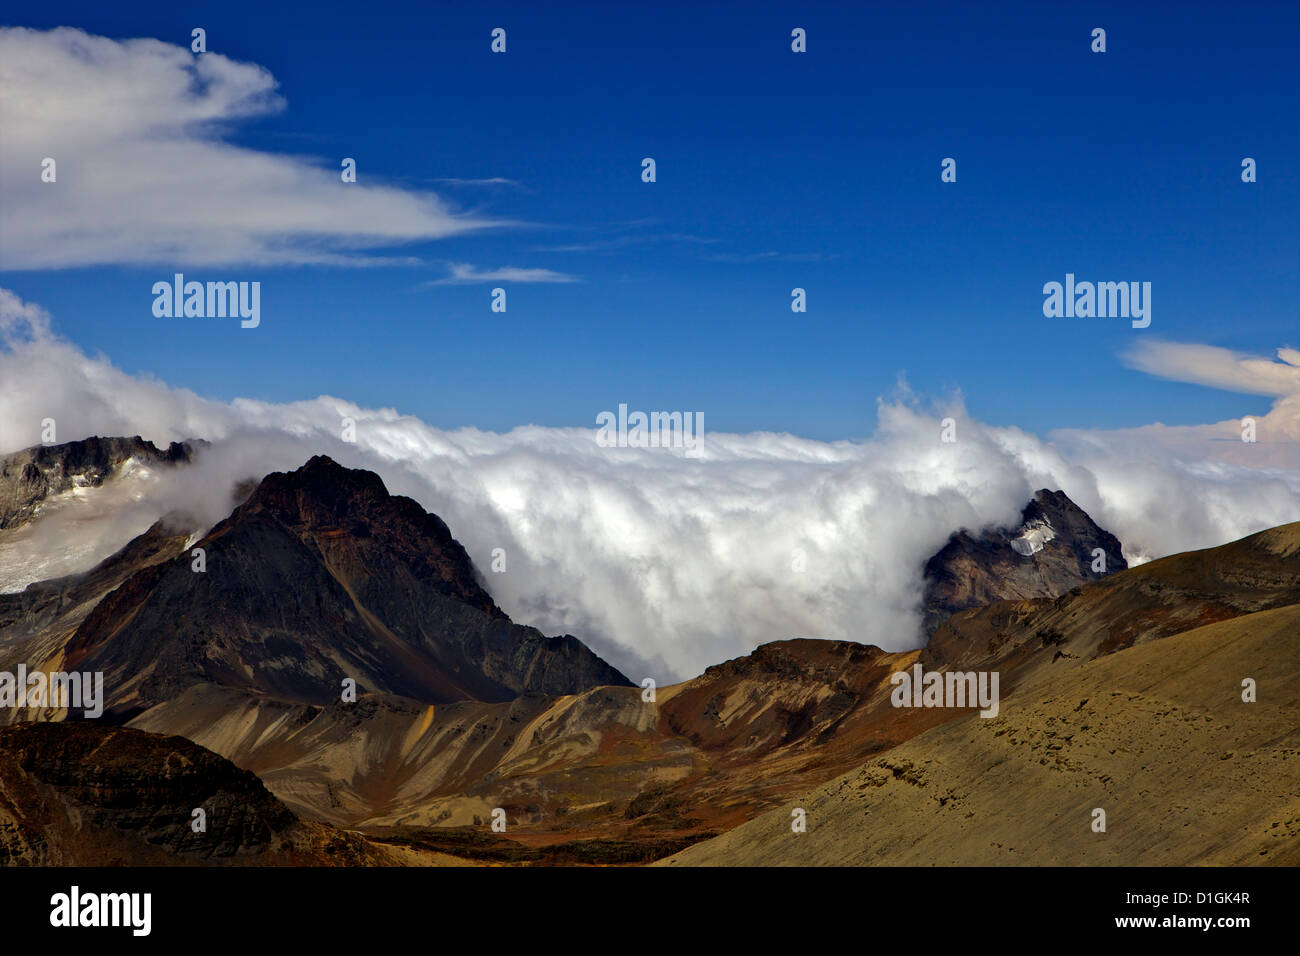 View from Mount Chacaltaya, Calahuyo, Cordillera real, Bolivia, Andes, South America - Stock Image